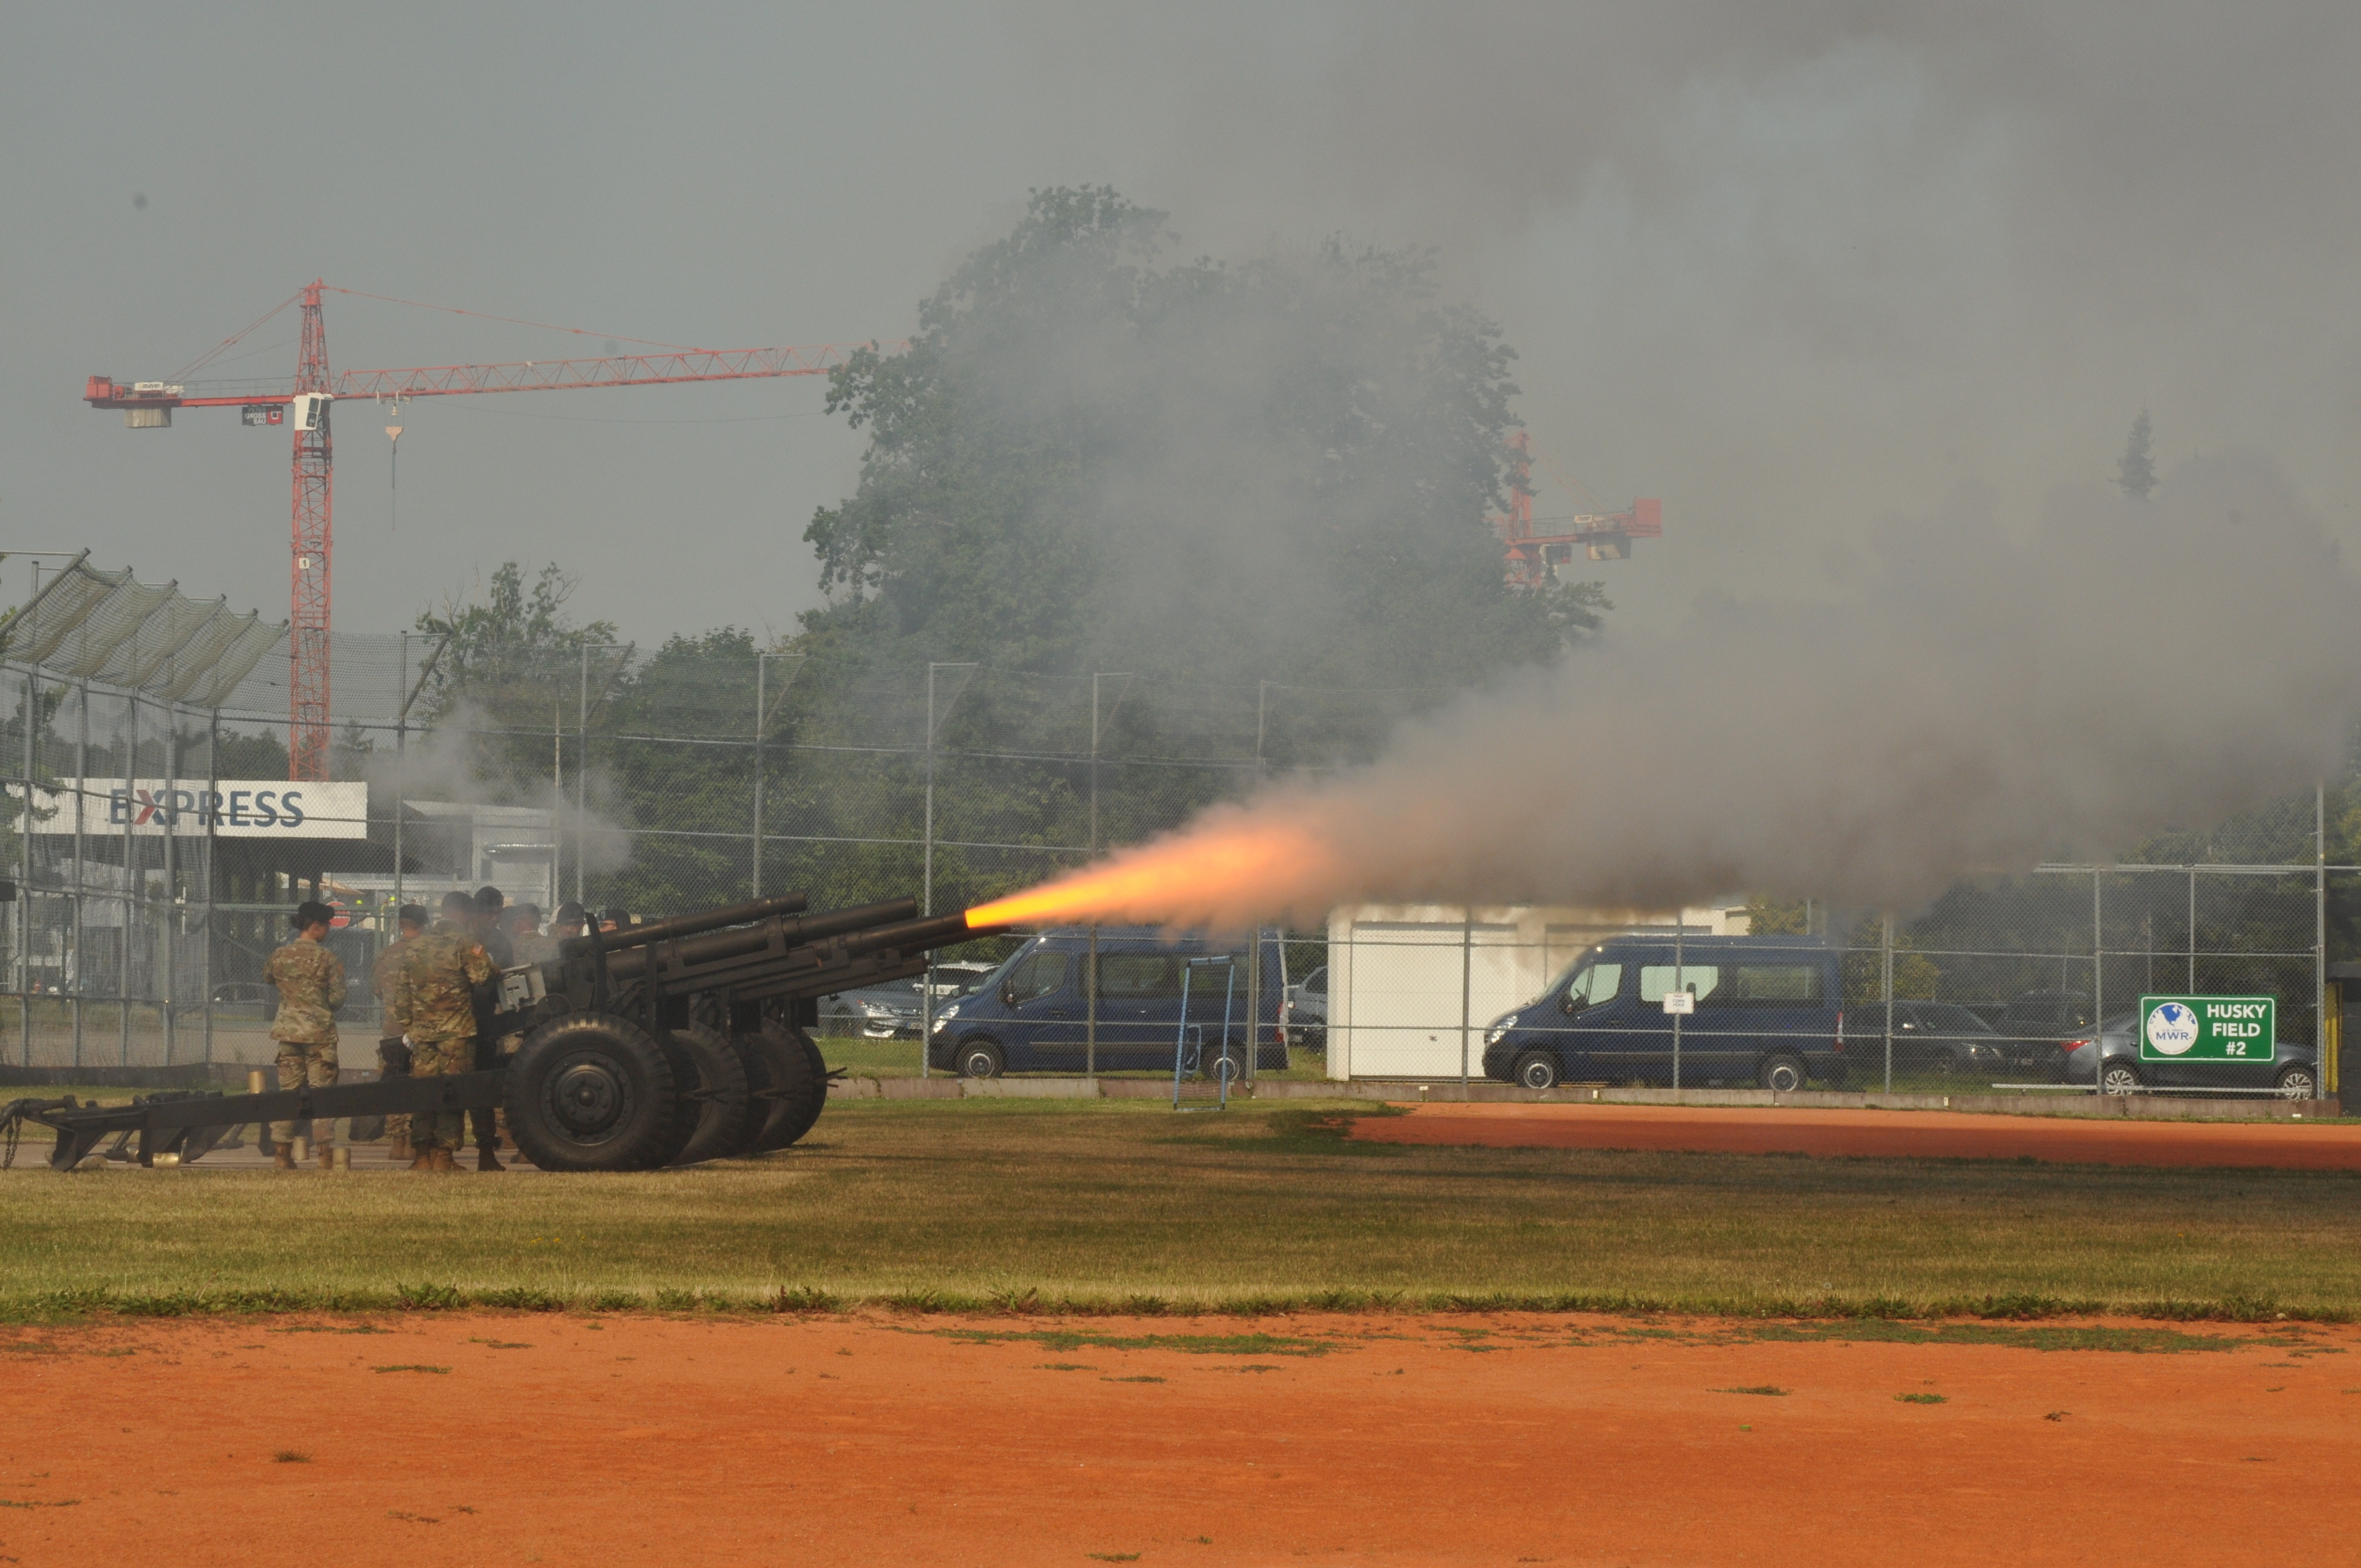 Service members fire a 19 round gun salute during the U.S. Africa Command change of command ceremony at Patch Barracks in Stuttgart, Germany, July 26, 2019. AFRICOM is one of six of the U.S. Defense Department's geographic unified commands and is responsible to the Secretary of Defense for military relations with African nations, the African Union, and African regional security organizations. (U.S. Army photo by Christian LeBlanc /Released)